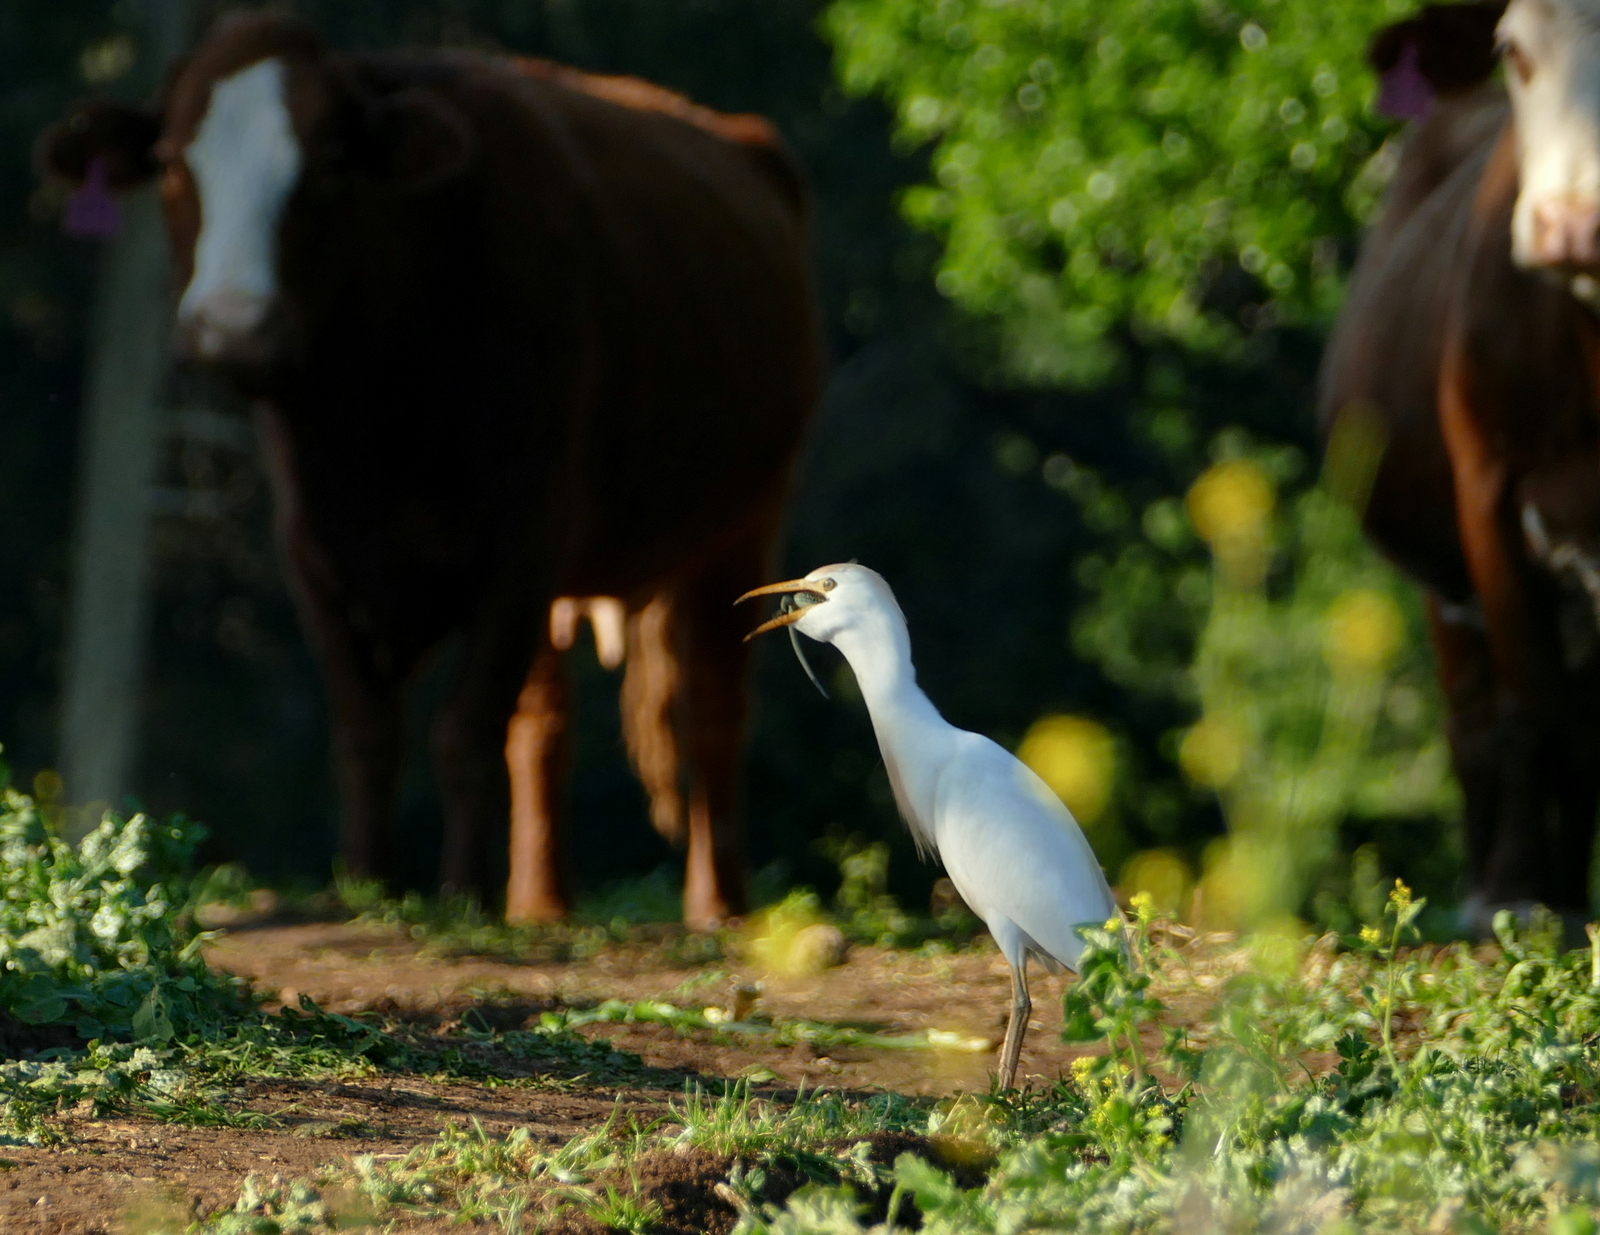 Cattle Egret (Bubulcus ibis) preys on a Lebanon Lizard (Phoenicolacerta laevis) in the Lower Galilee March 2017_